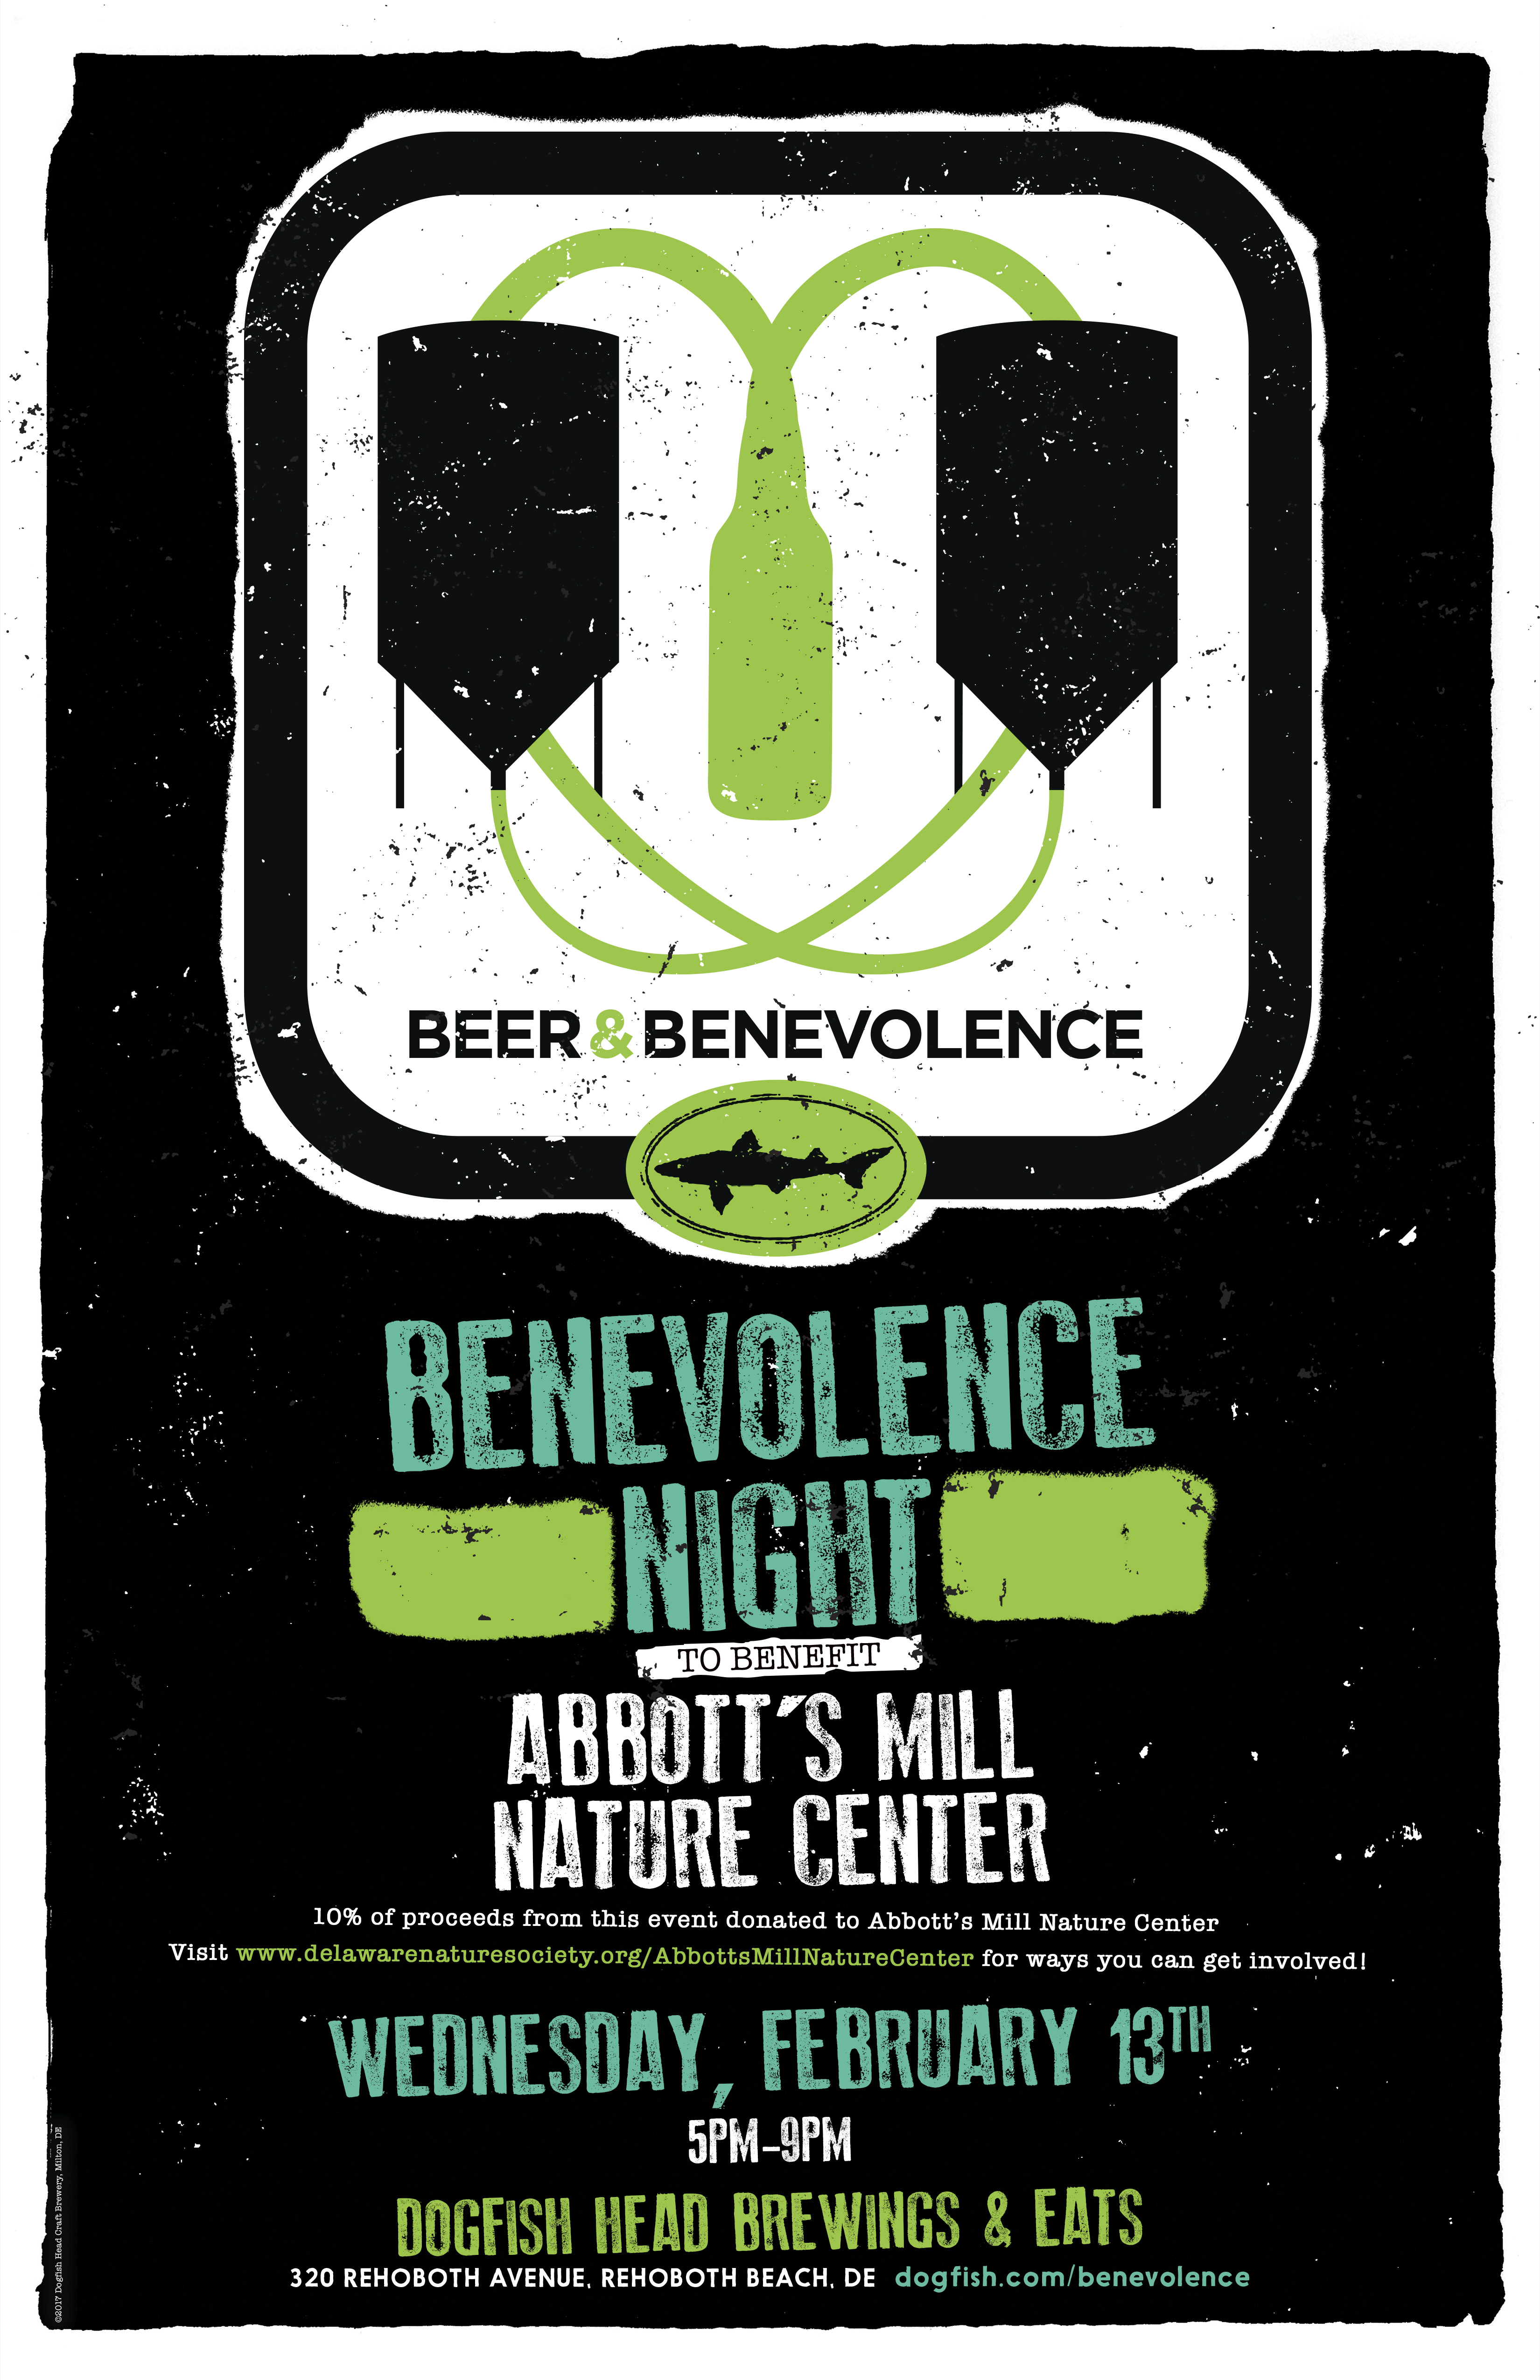 Beer & Benevolence Night to benefit Abbott's Mill Nature Center